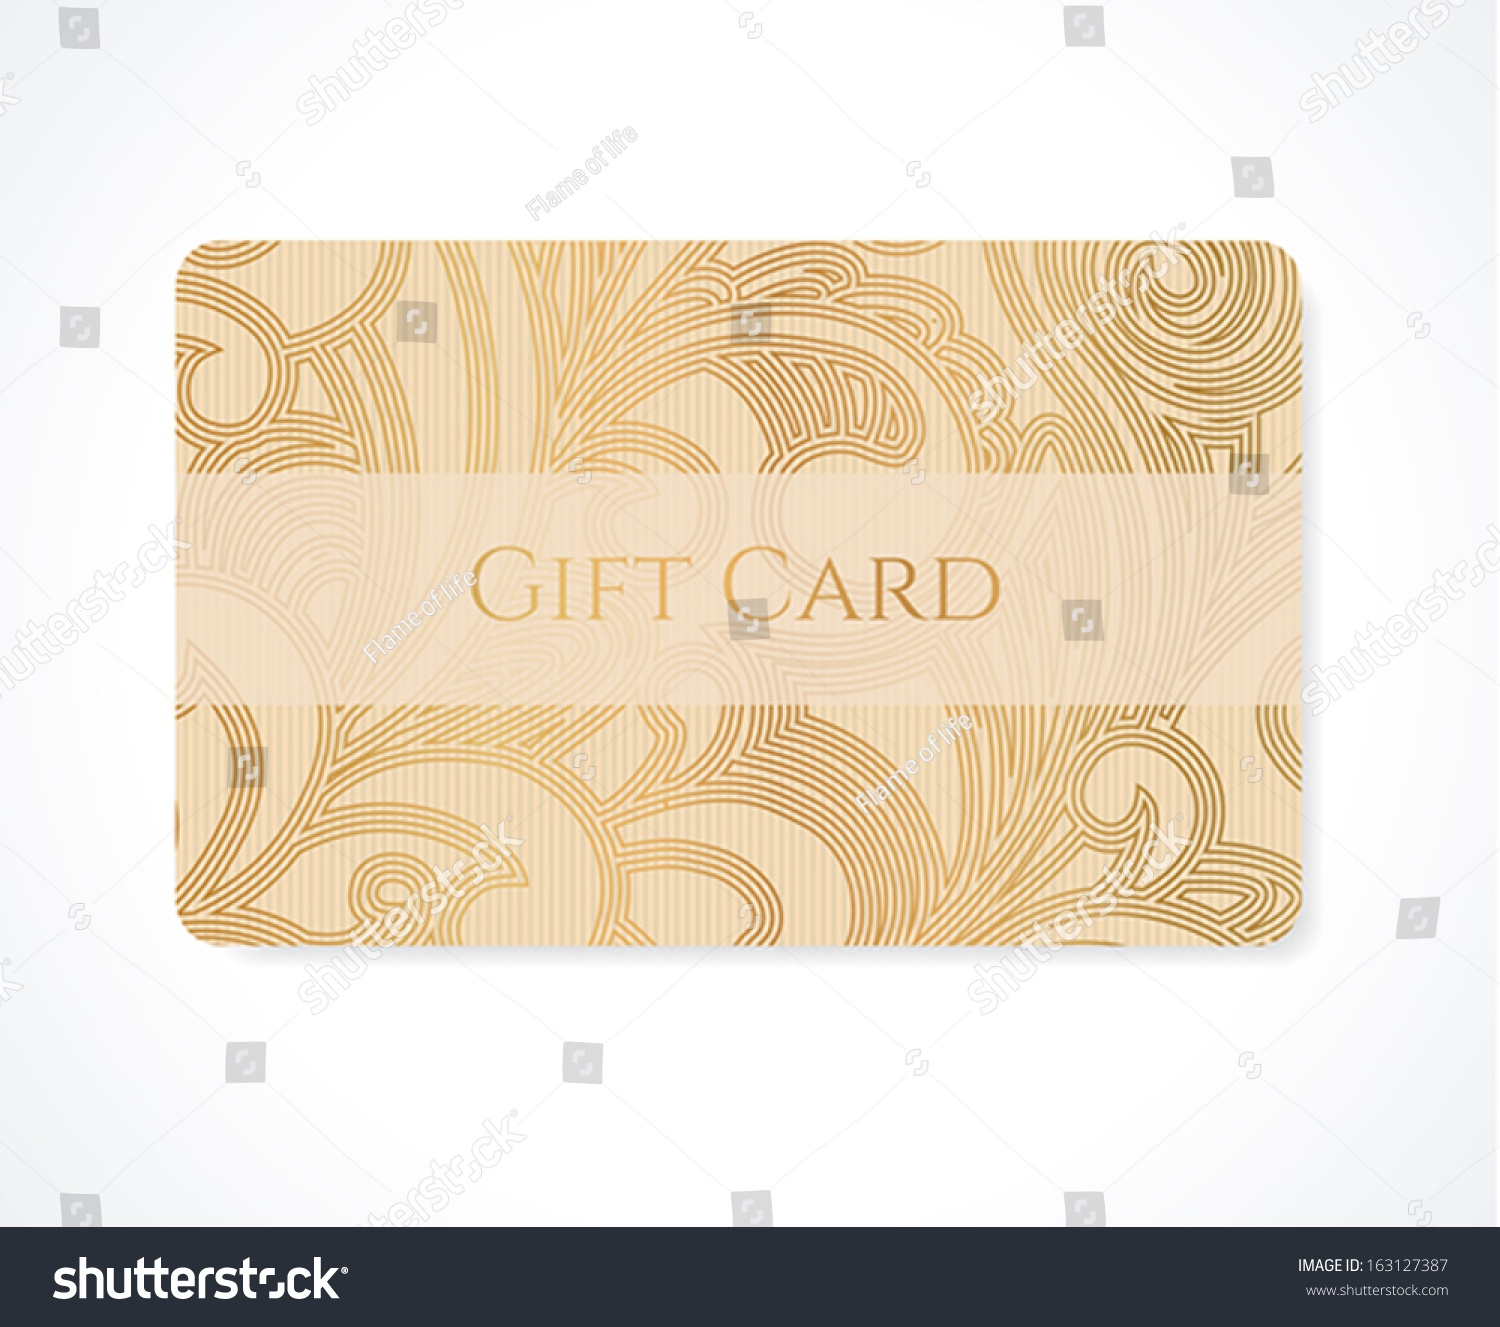 Gift Card Discount Card Business Card Stock Vector 163127387 ...